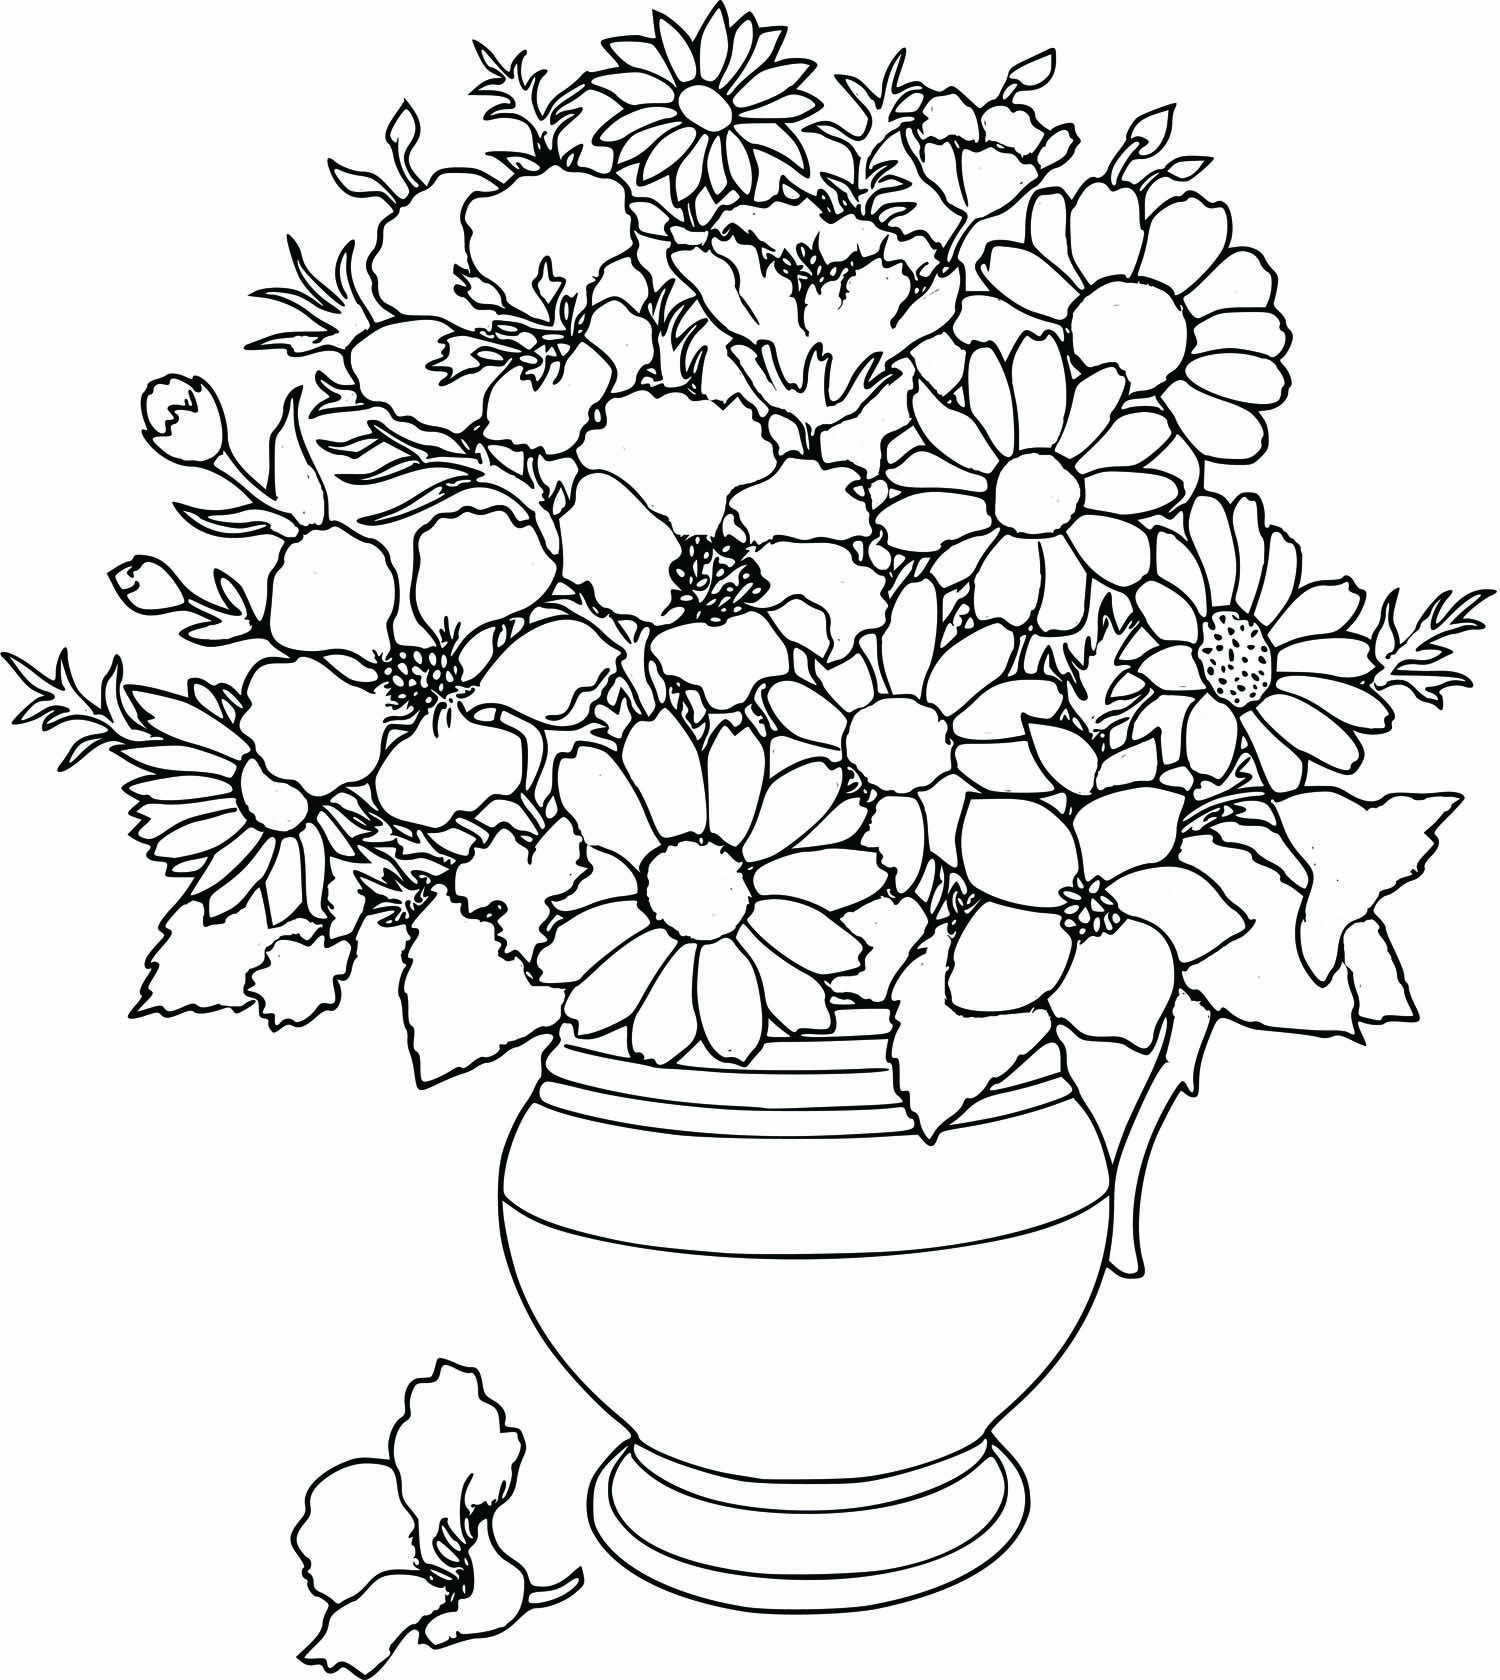 colouring pages detailed flower colouring pages pinterest